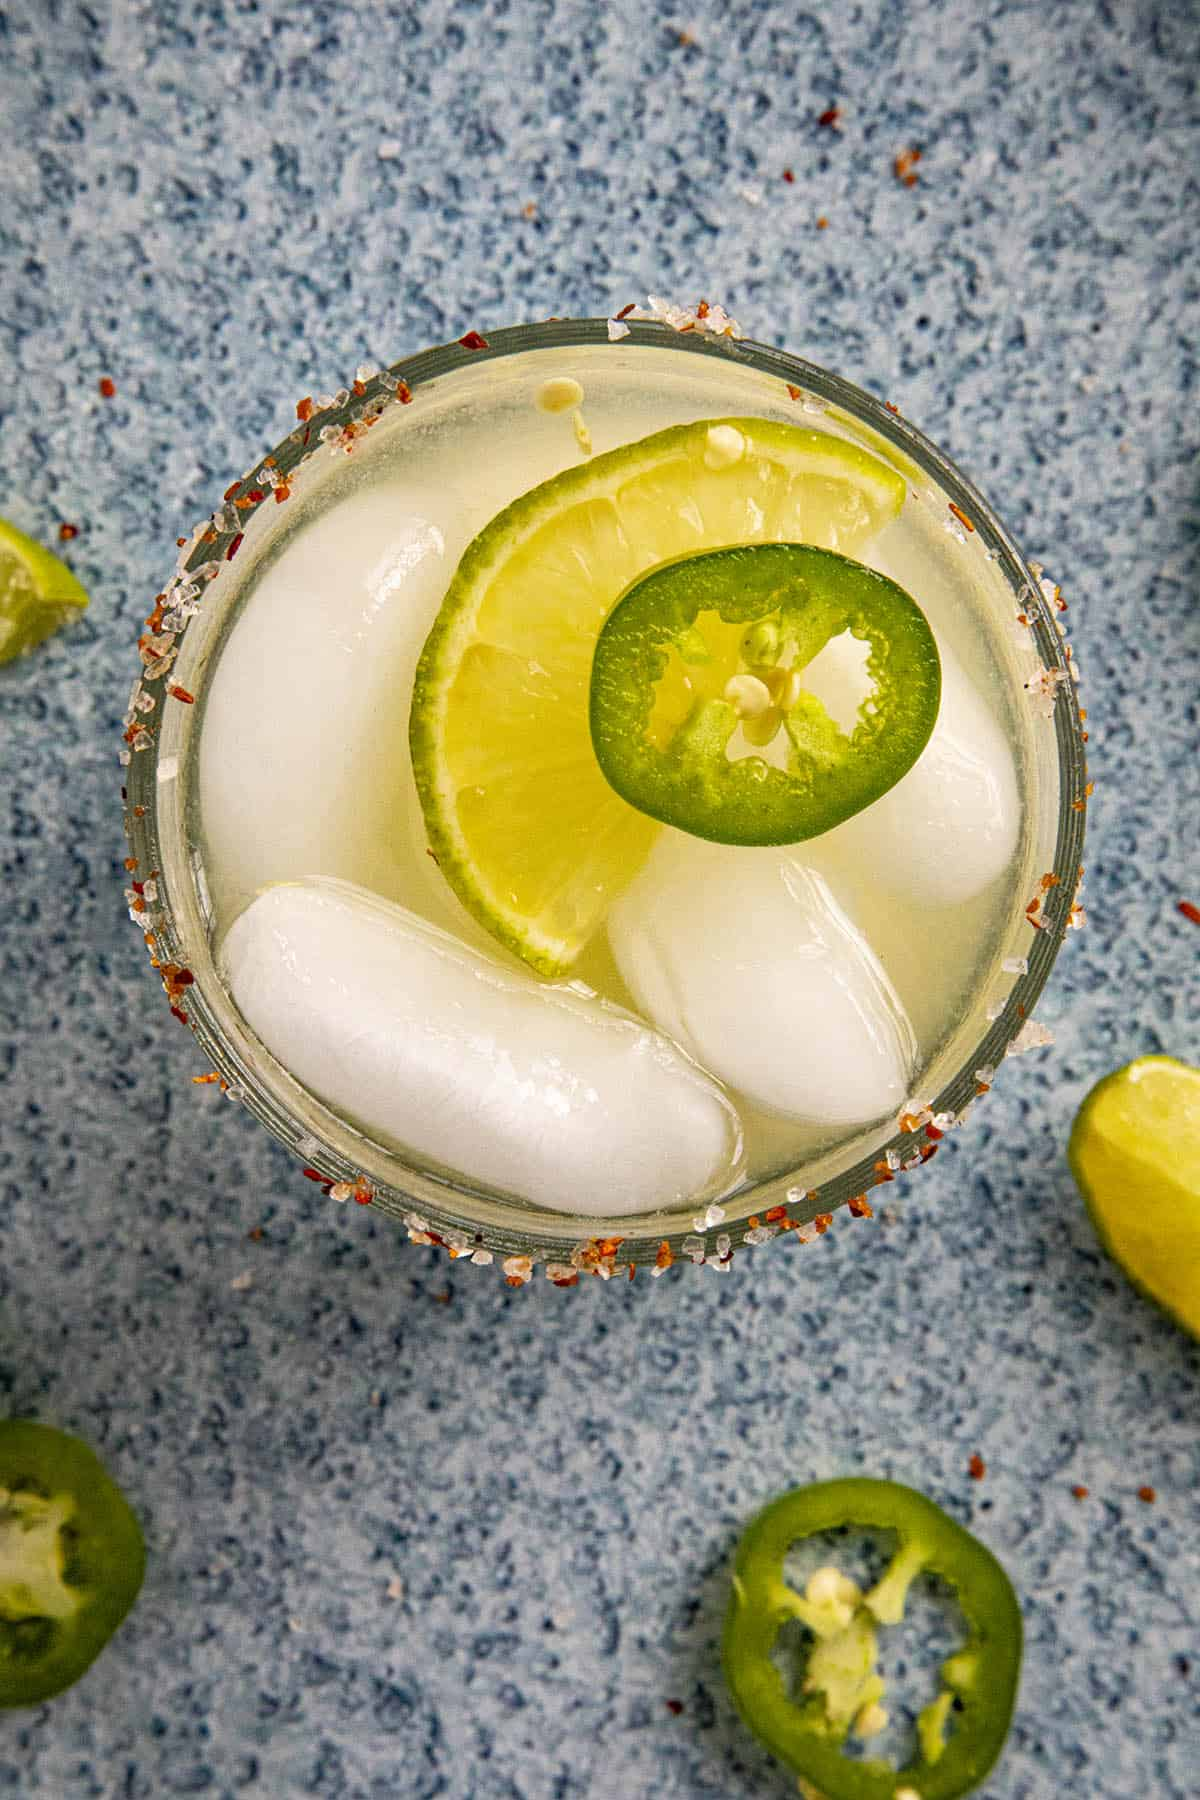 Jalapeno Margarita garnished with a lime wedge and jalapeno slice